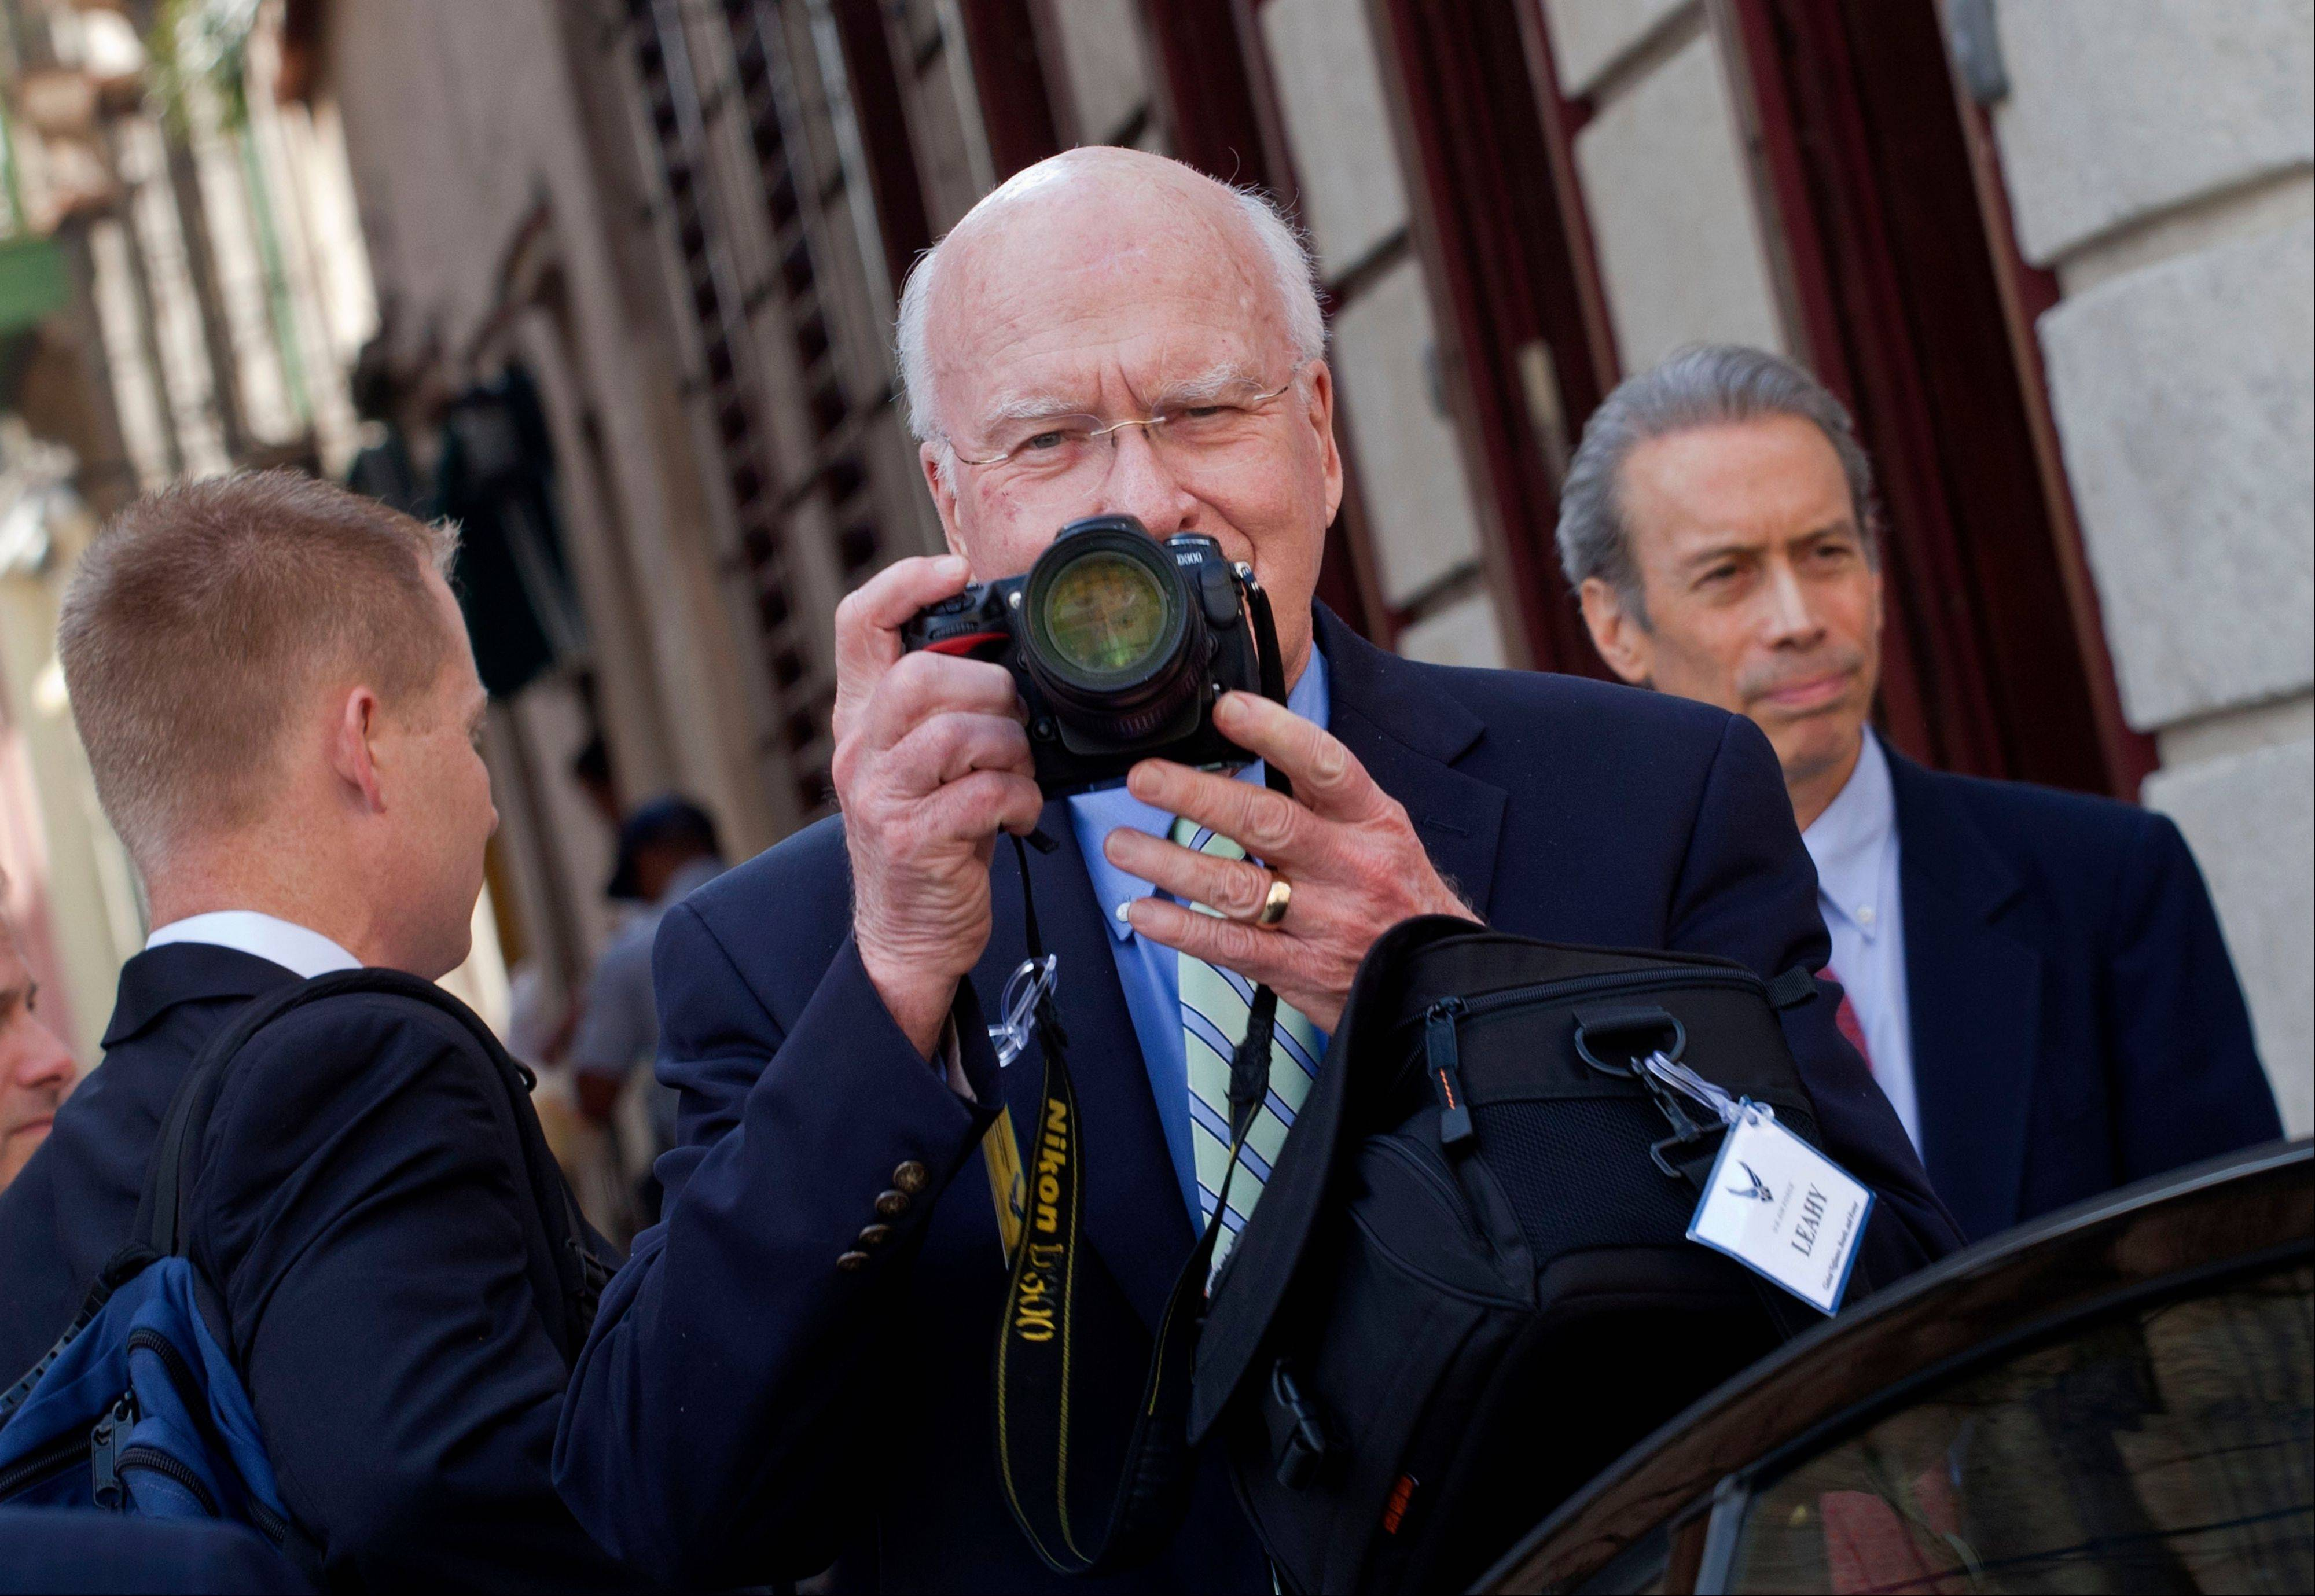 U.S. Sen. Patrick Leahy, center, takes pictures with his camera after a meeting with Cuba�s Foreign Minister Bruno Rodriguez in Old Havana, Cuba, Tuesday, Feb. 19, 2013. U.S. lawmakers met Tuesday with Cuba�s foreign minister and visited an American man whose detention and long sentence in Cuba has hampered efforts to improve ties between the countries.